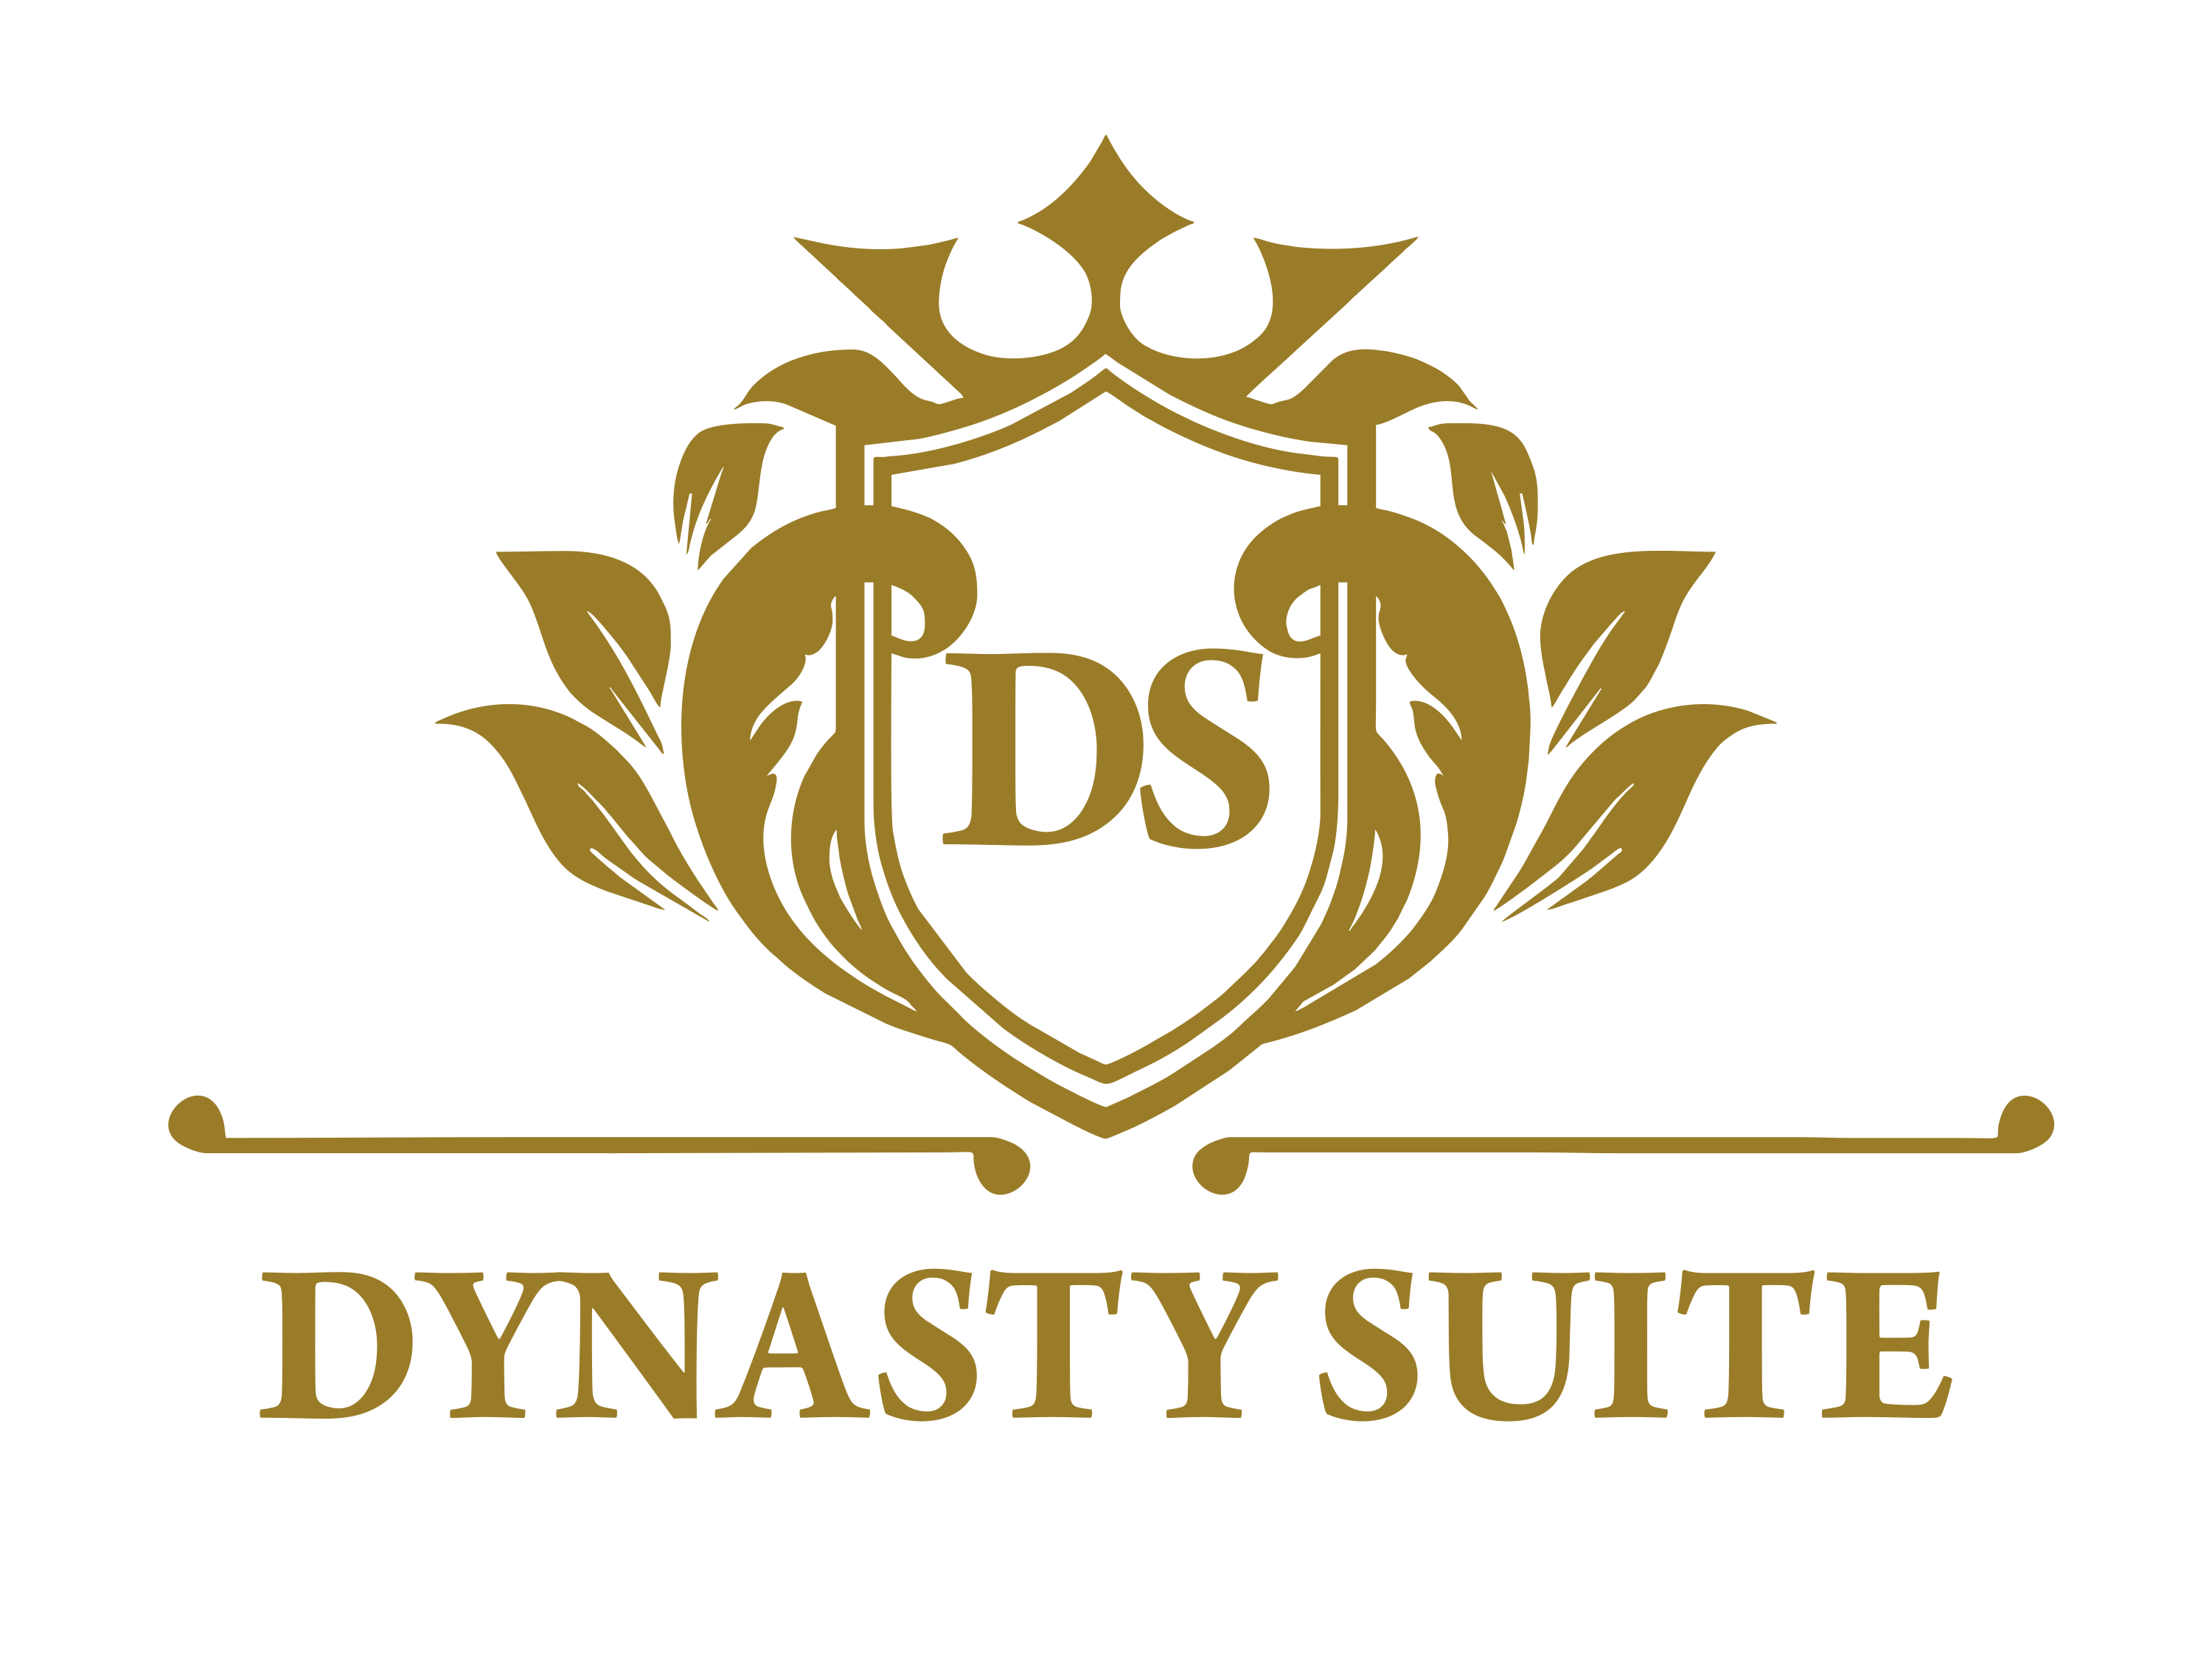 The Dynasty Suite Logo